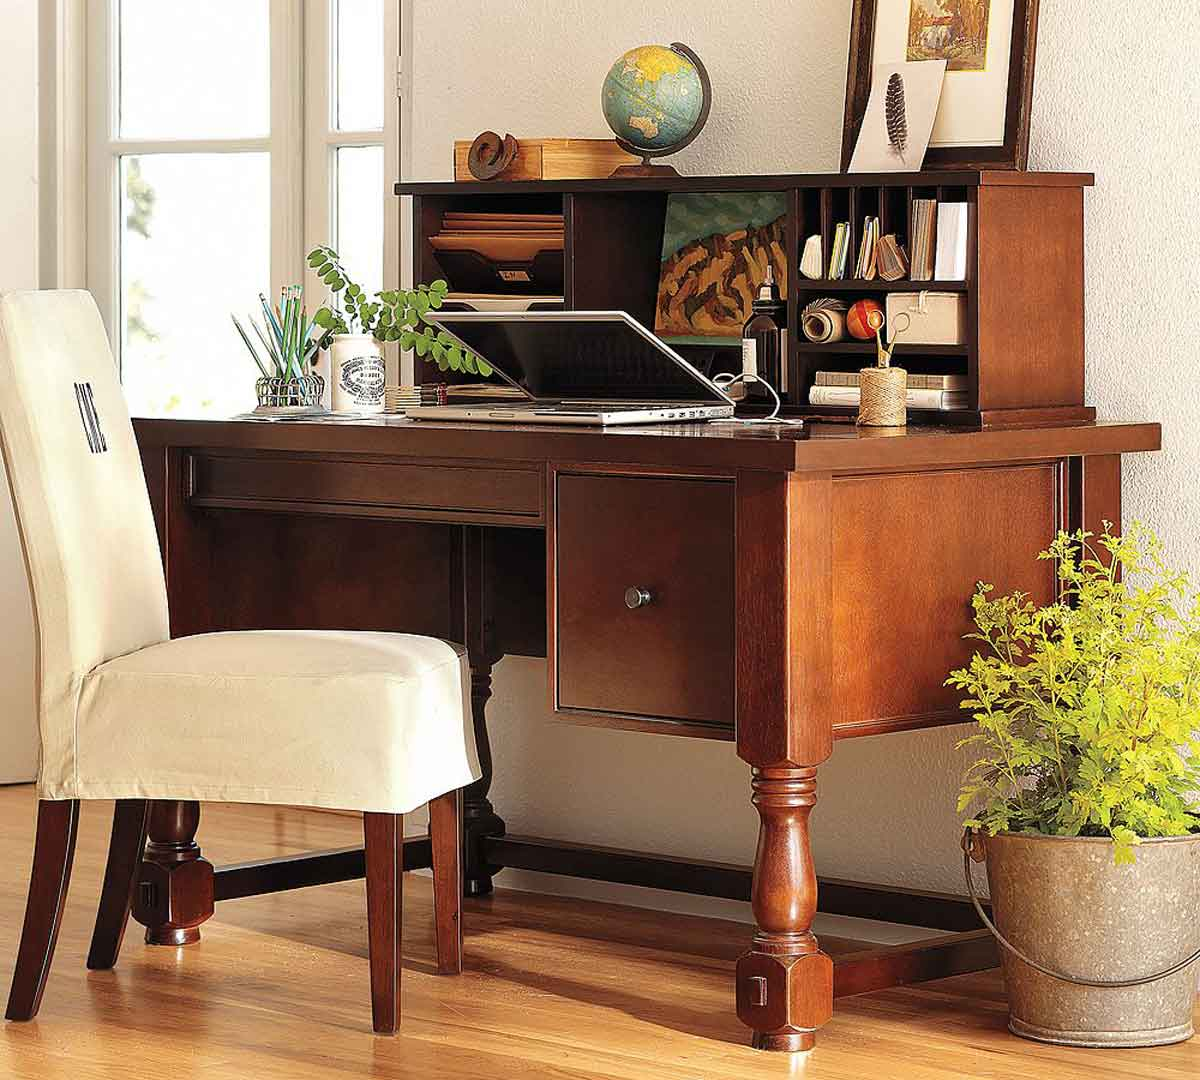 20 Of The Best Modern Home Office Ideas: Home Office Design Ideas